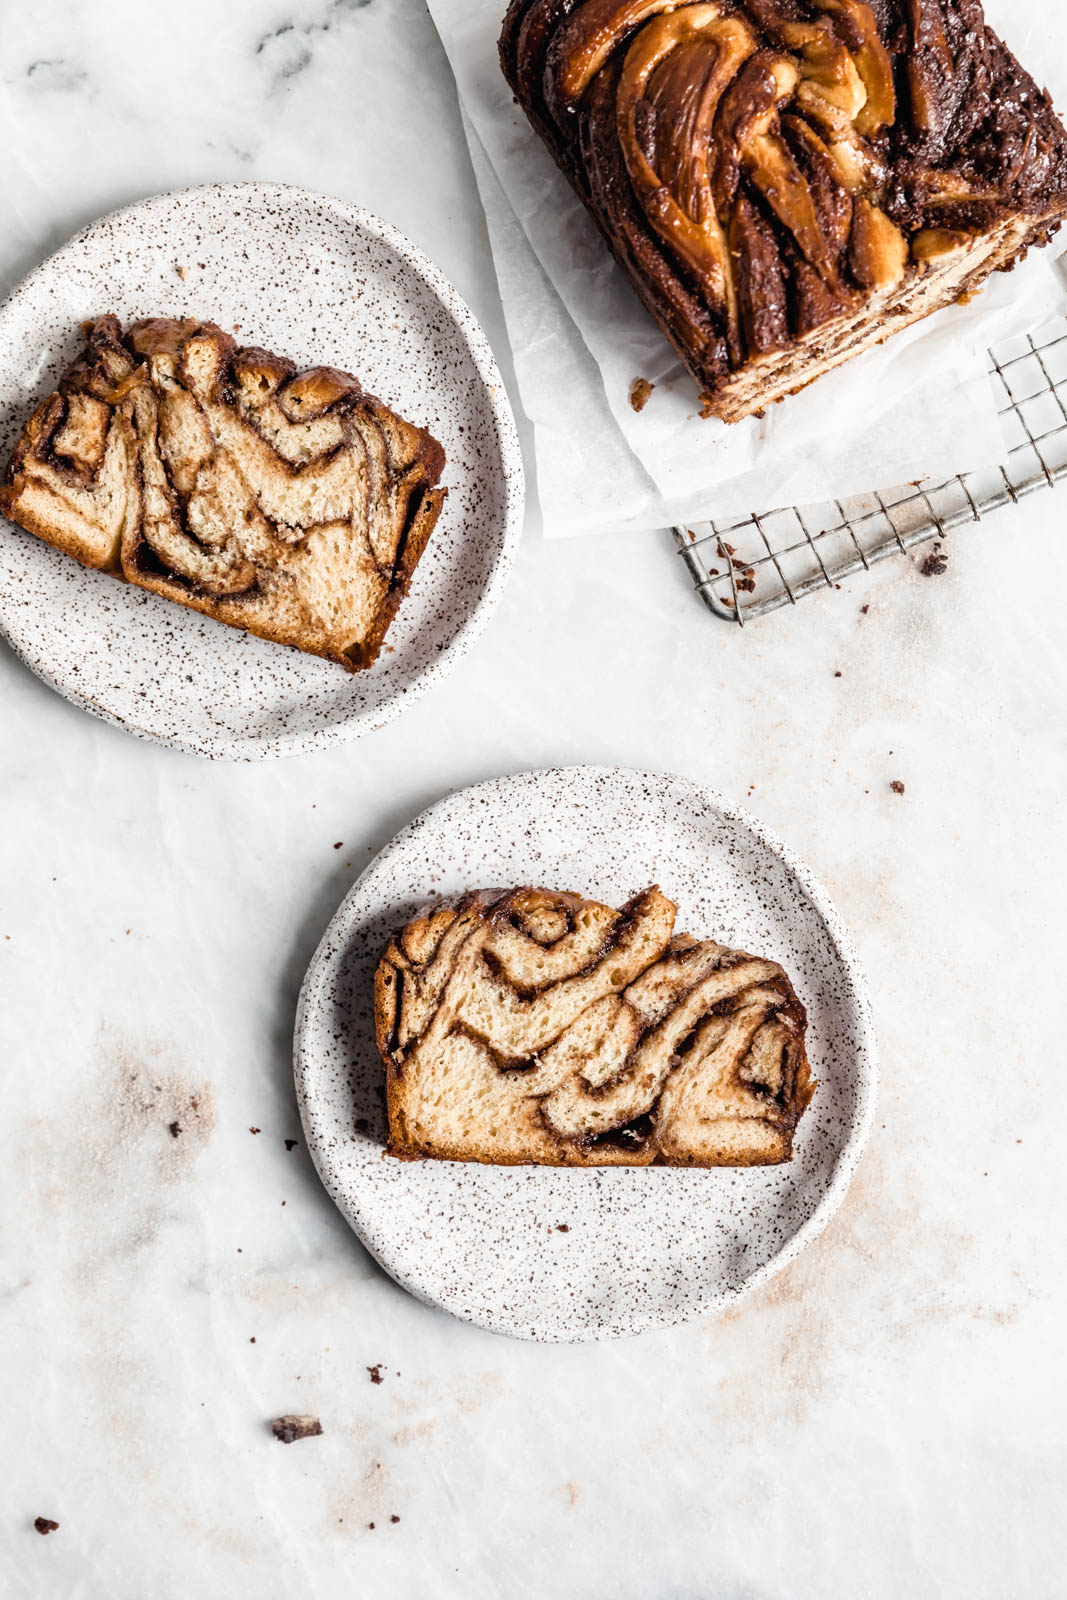 Buttery, flaky dough swirled together with cinnamon AND chocolate make this stunning Cinnamon Chocolate Babka. Step by step instructions on how to make the perfect babka!